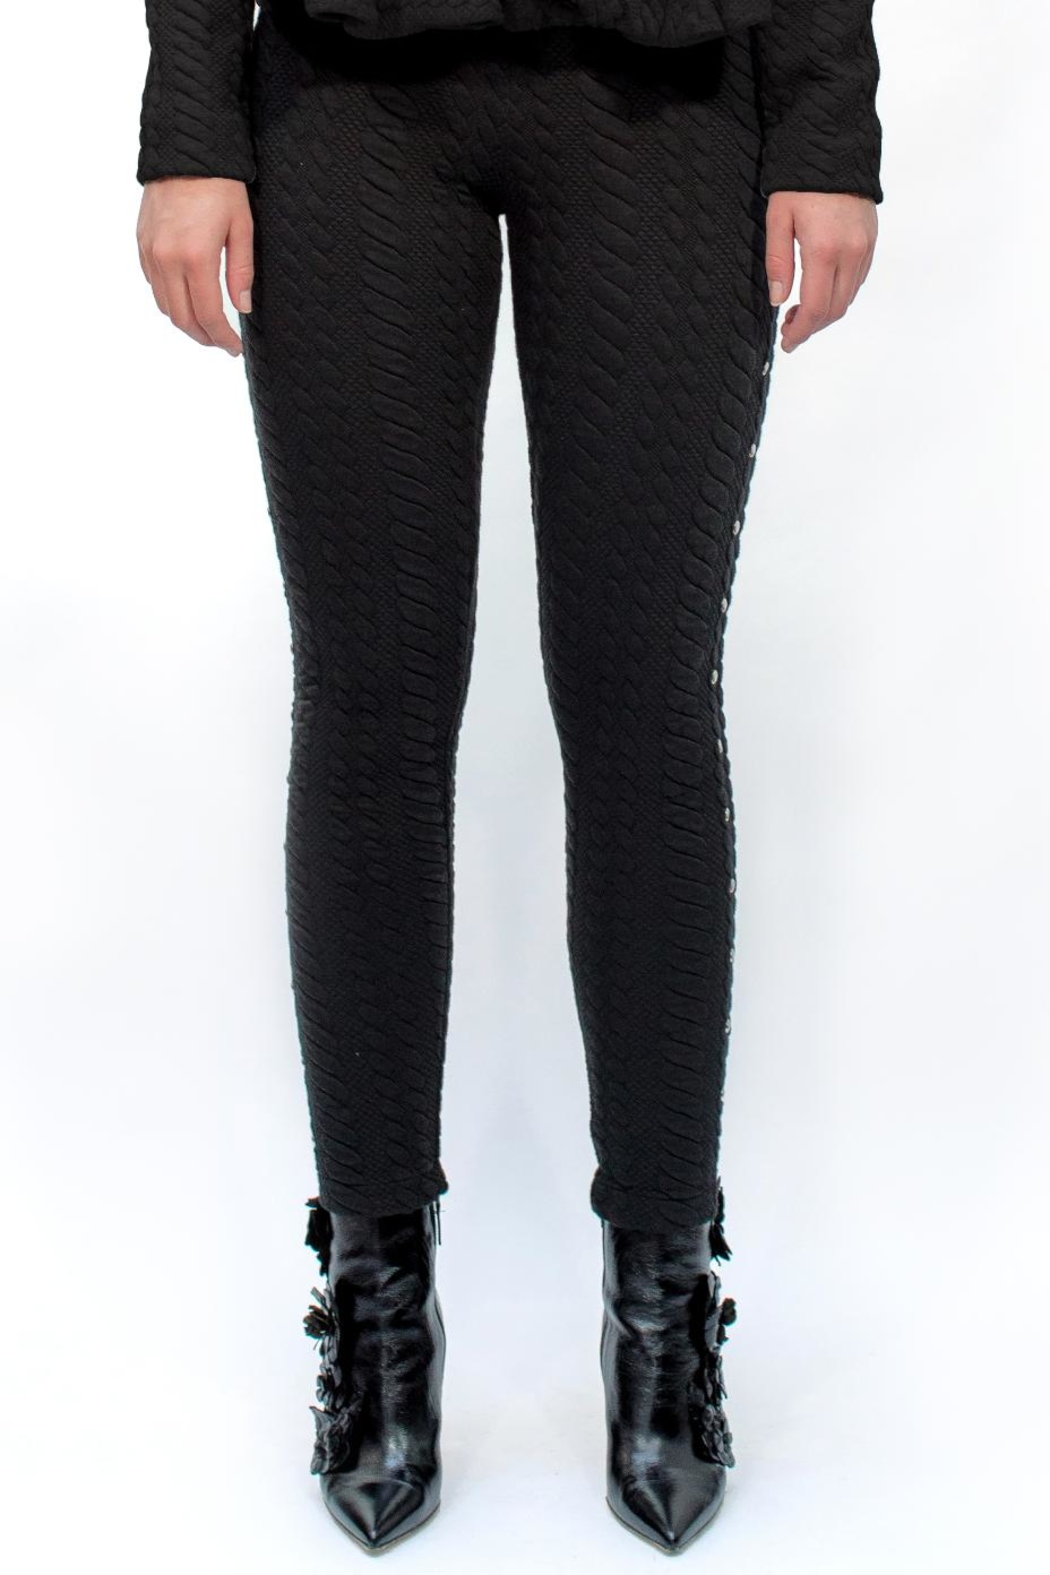 Viesca y Viesca Studded Leggings - Front Full Image